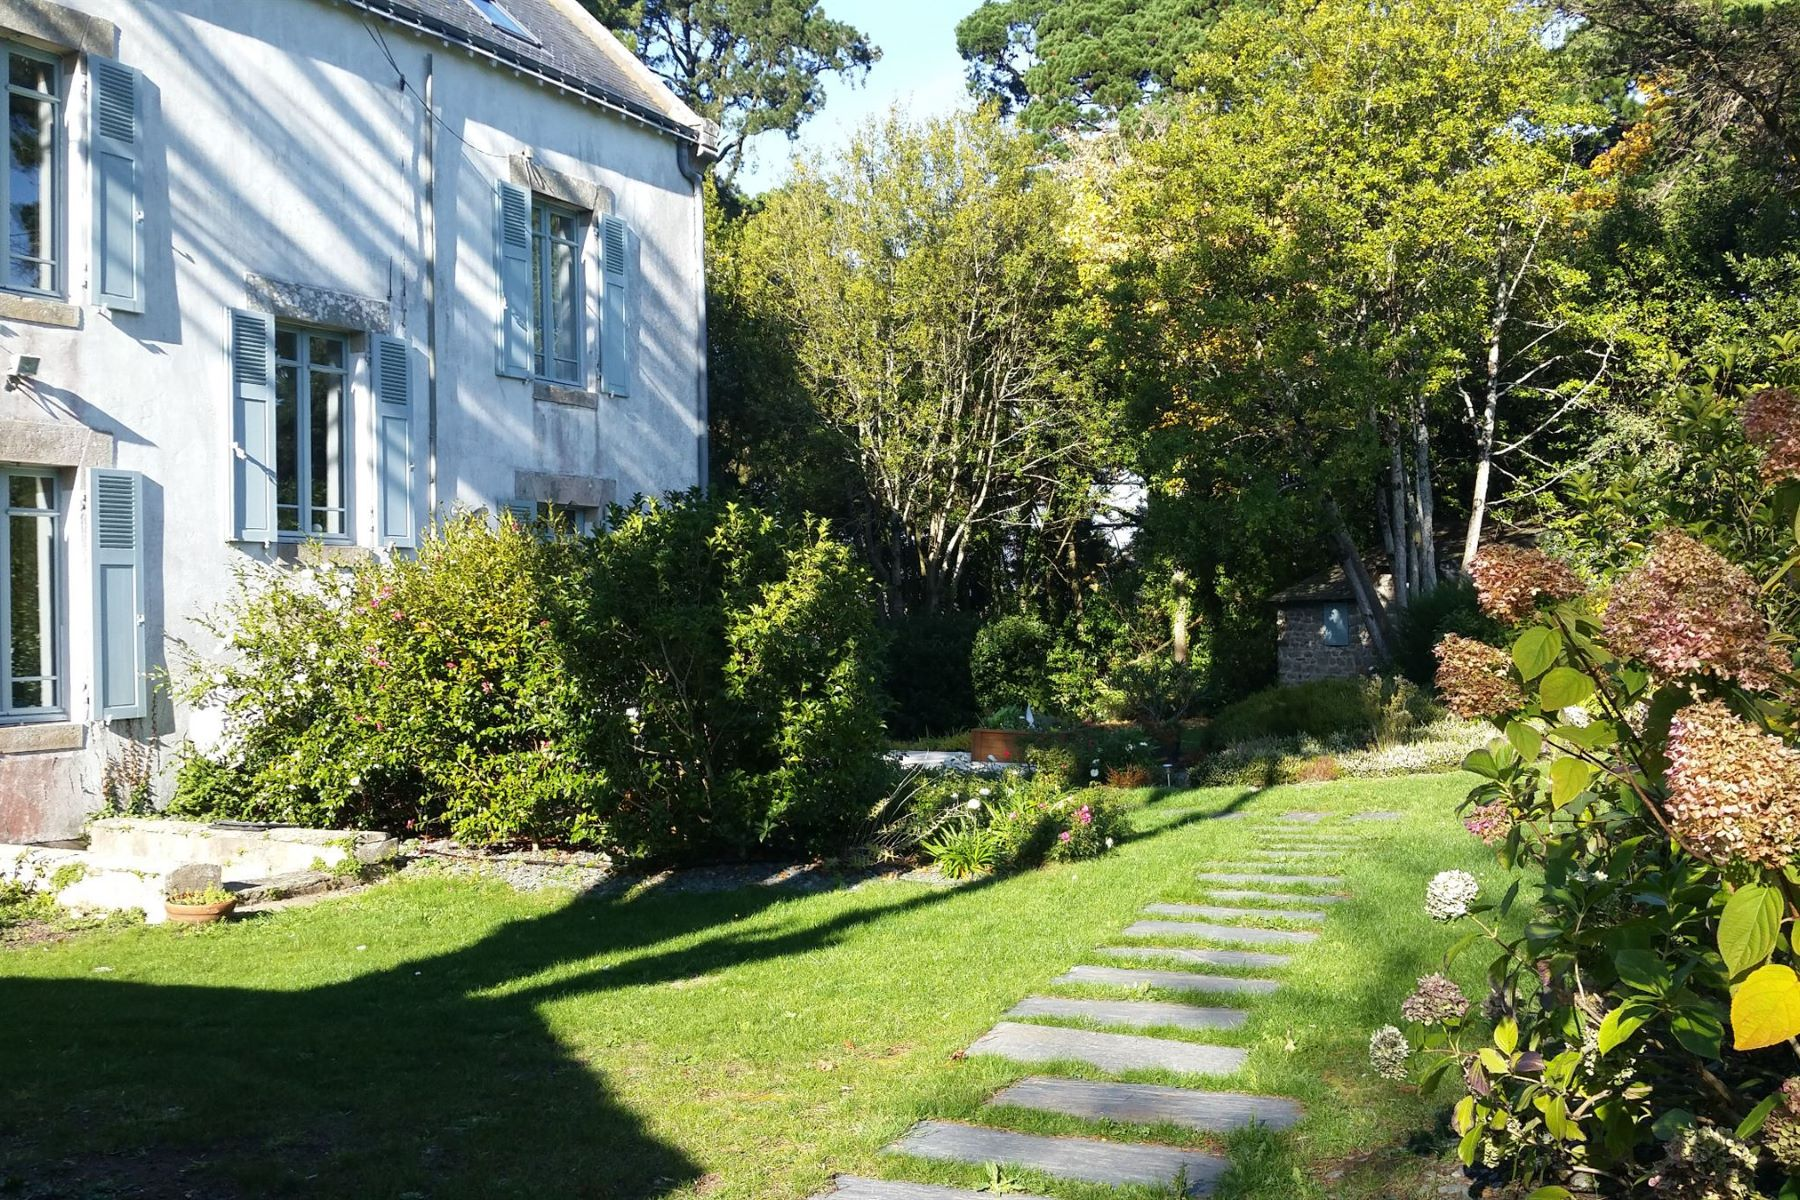 Single Family Home for Sale at Ile aux moines captain house overlooking the Gulf of Morbihan Other Brittany, Brittany, 56780 France